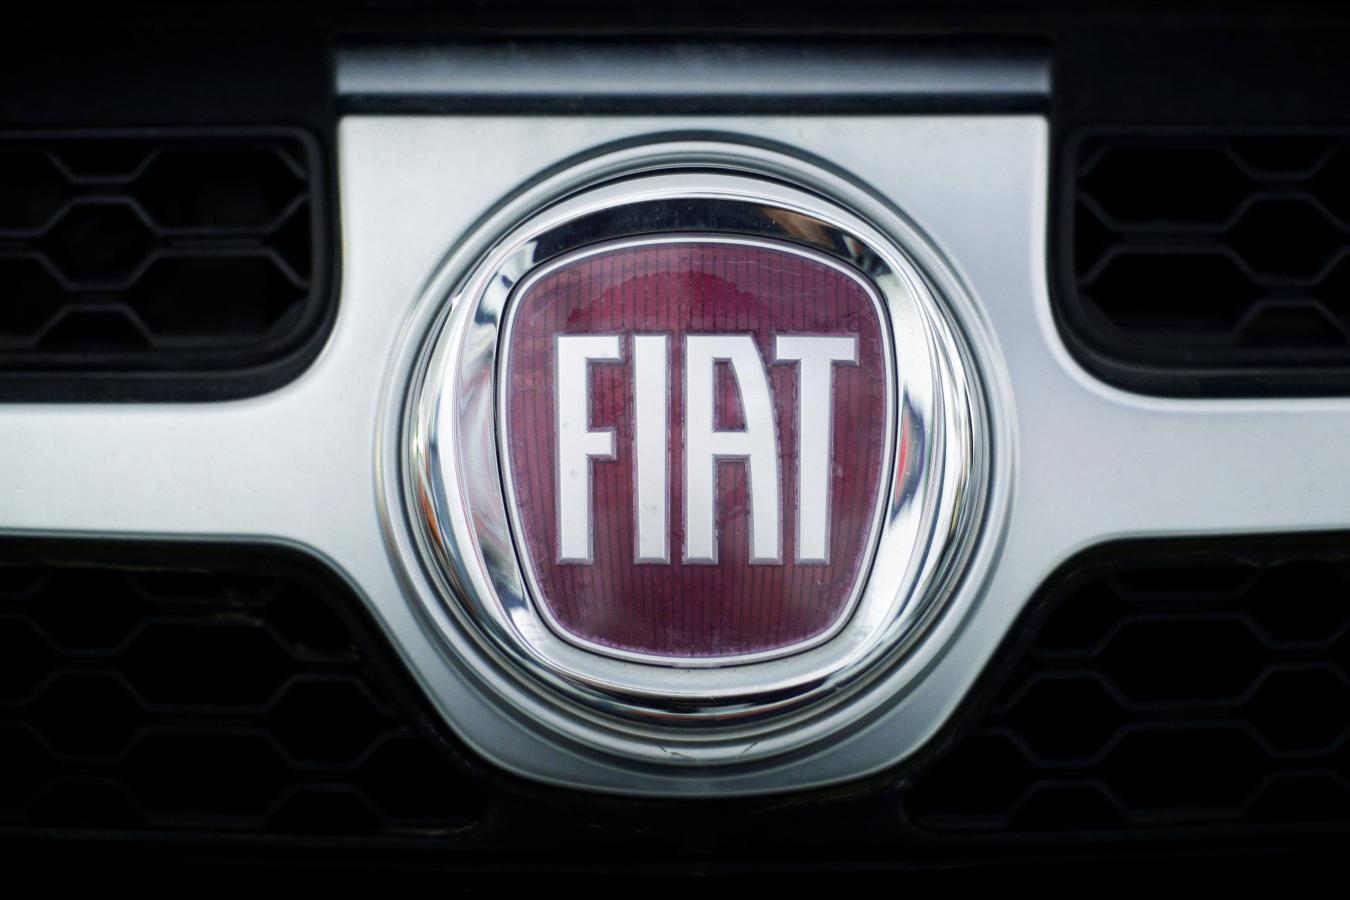 Fiat chrysler shares fall on report of german sales ban threat slideshow 6 images biocorpaavc